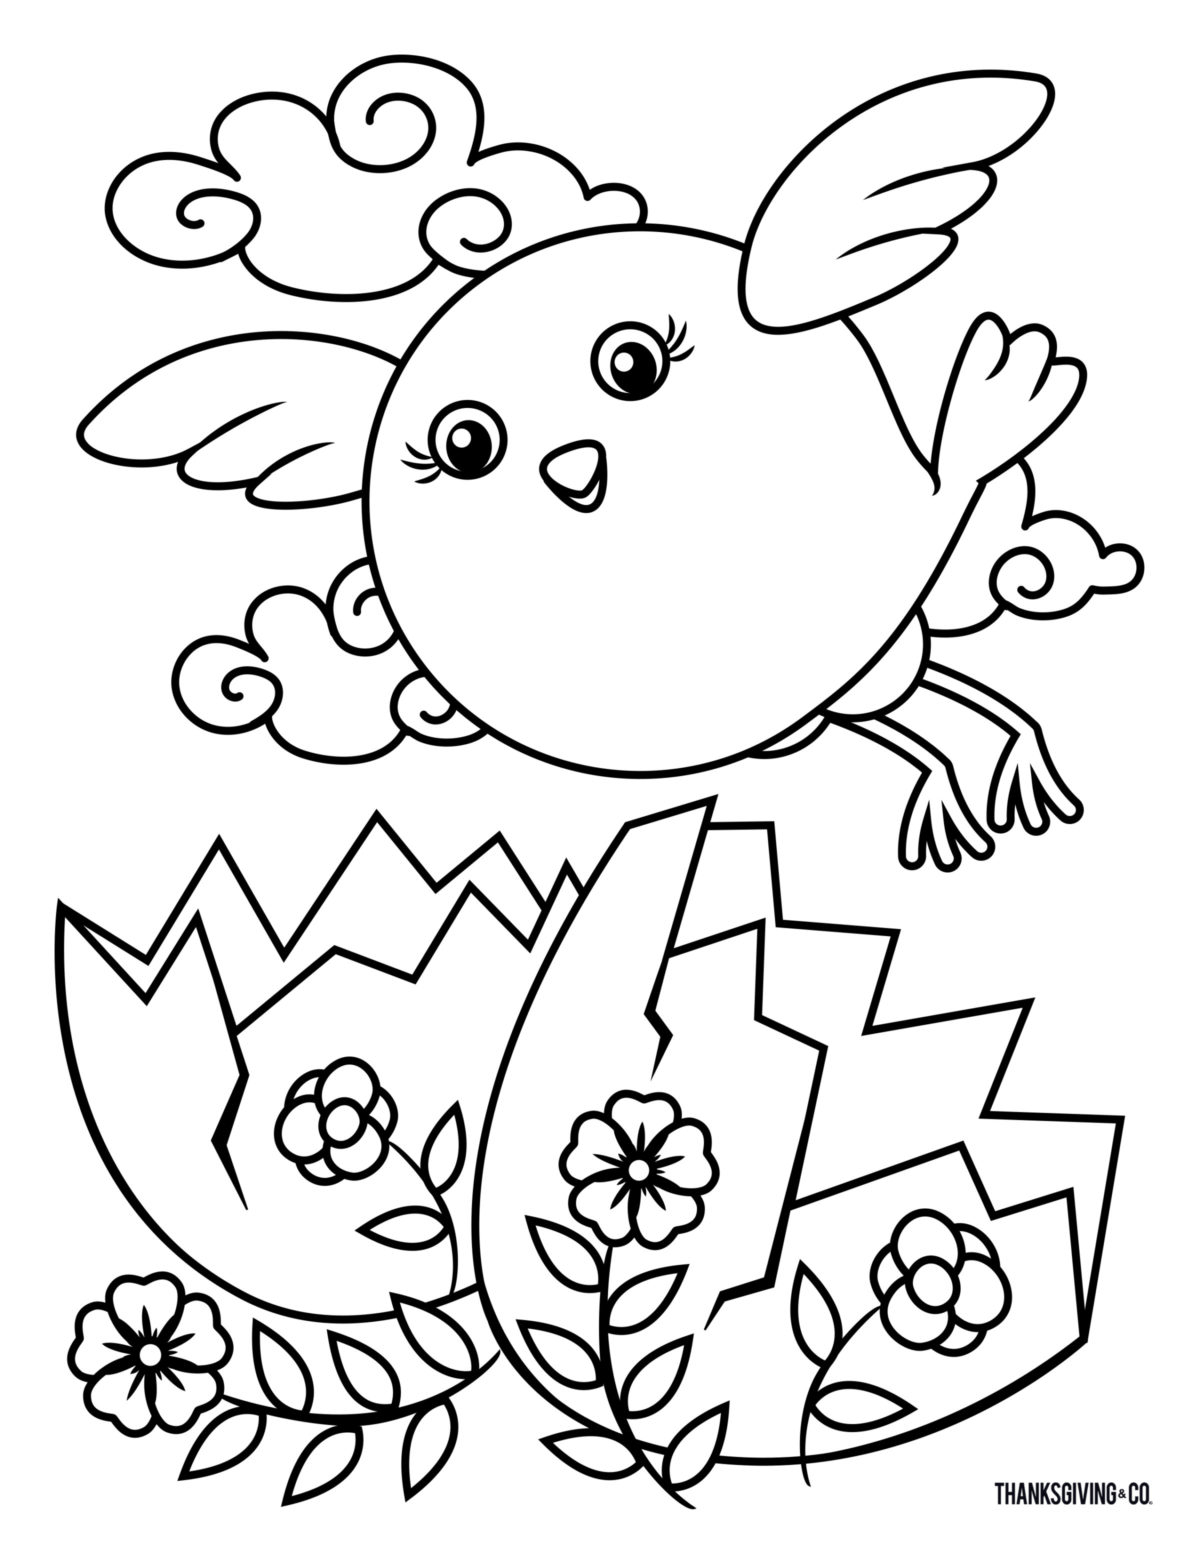 pysanky patterns and designs | Pysanky coloring pages and other ... | 1553x1200